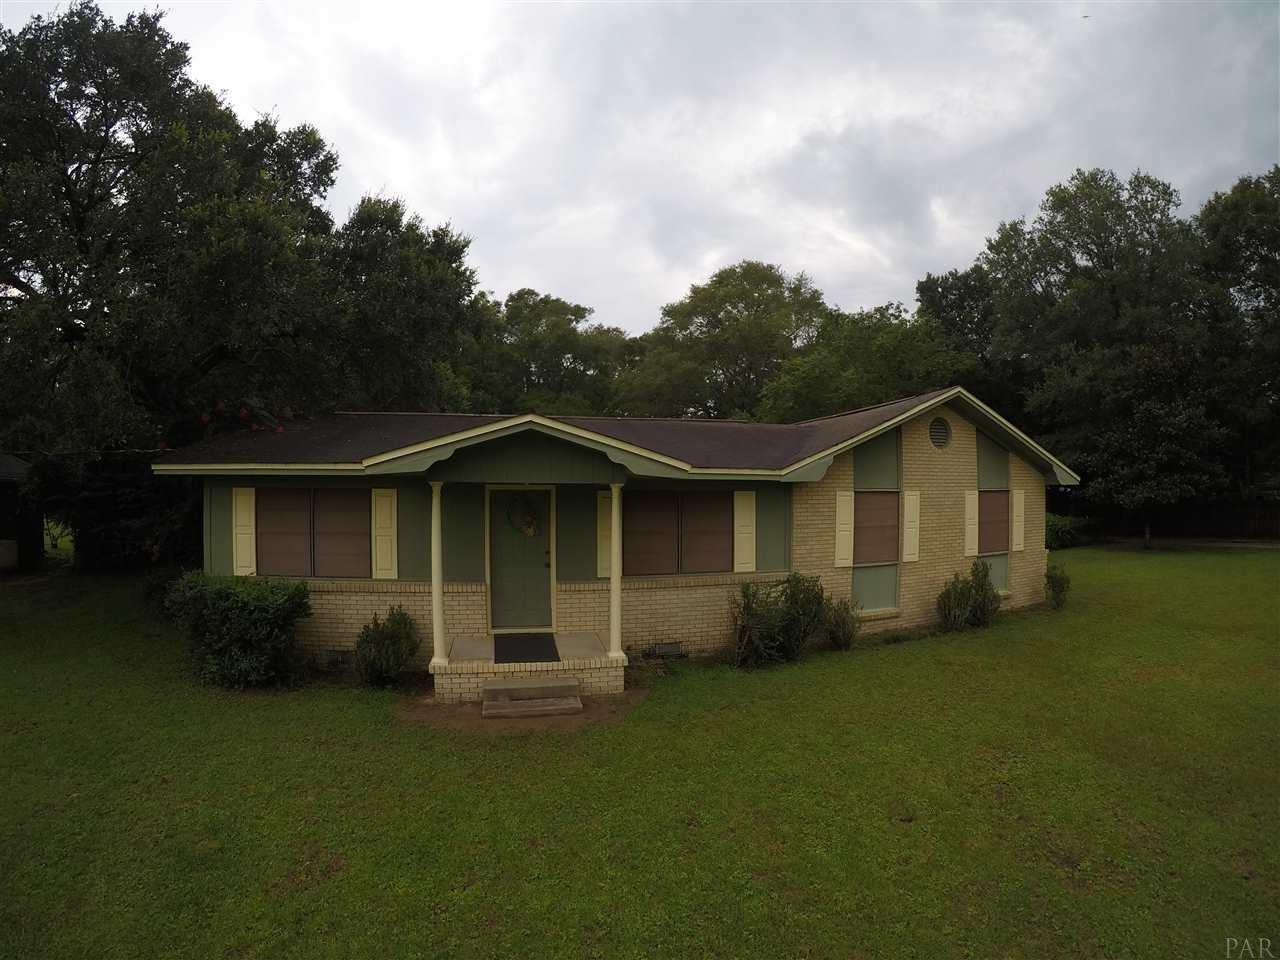 HOME AND ACREAGE IN PENSACOLA! Over 1,200 Square Foot Home on Nearly 1 1/2 Acres for ONLY $144,900!